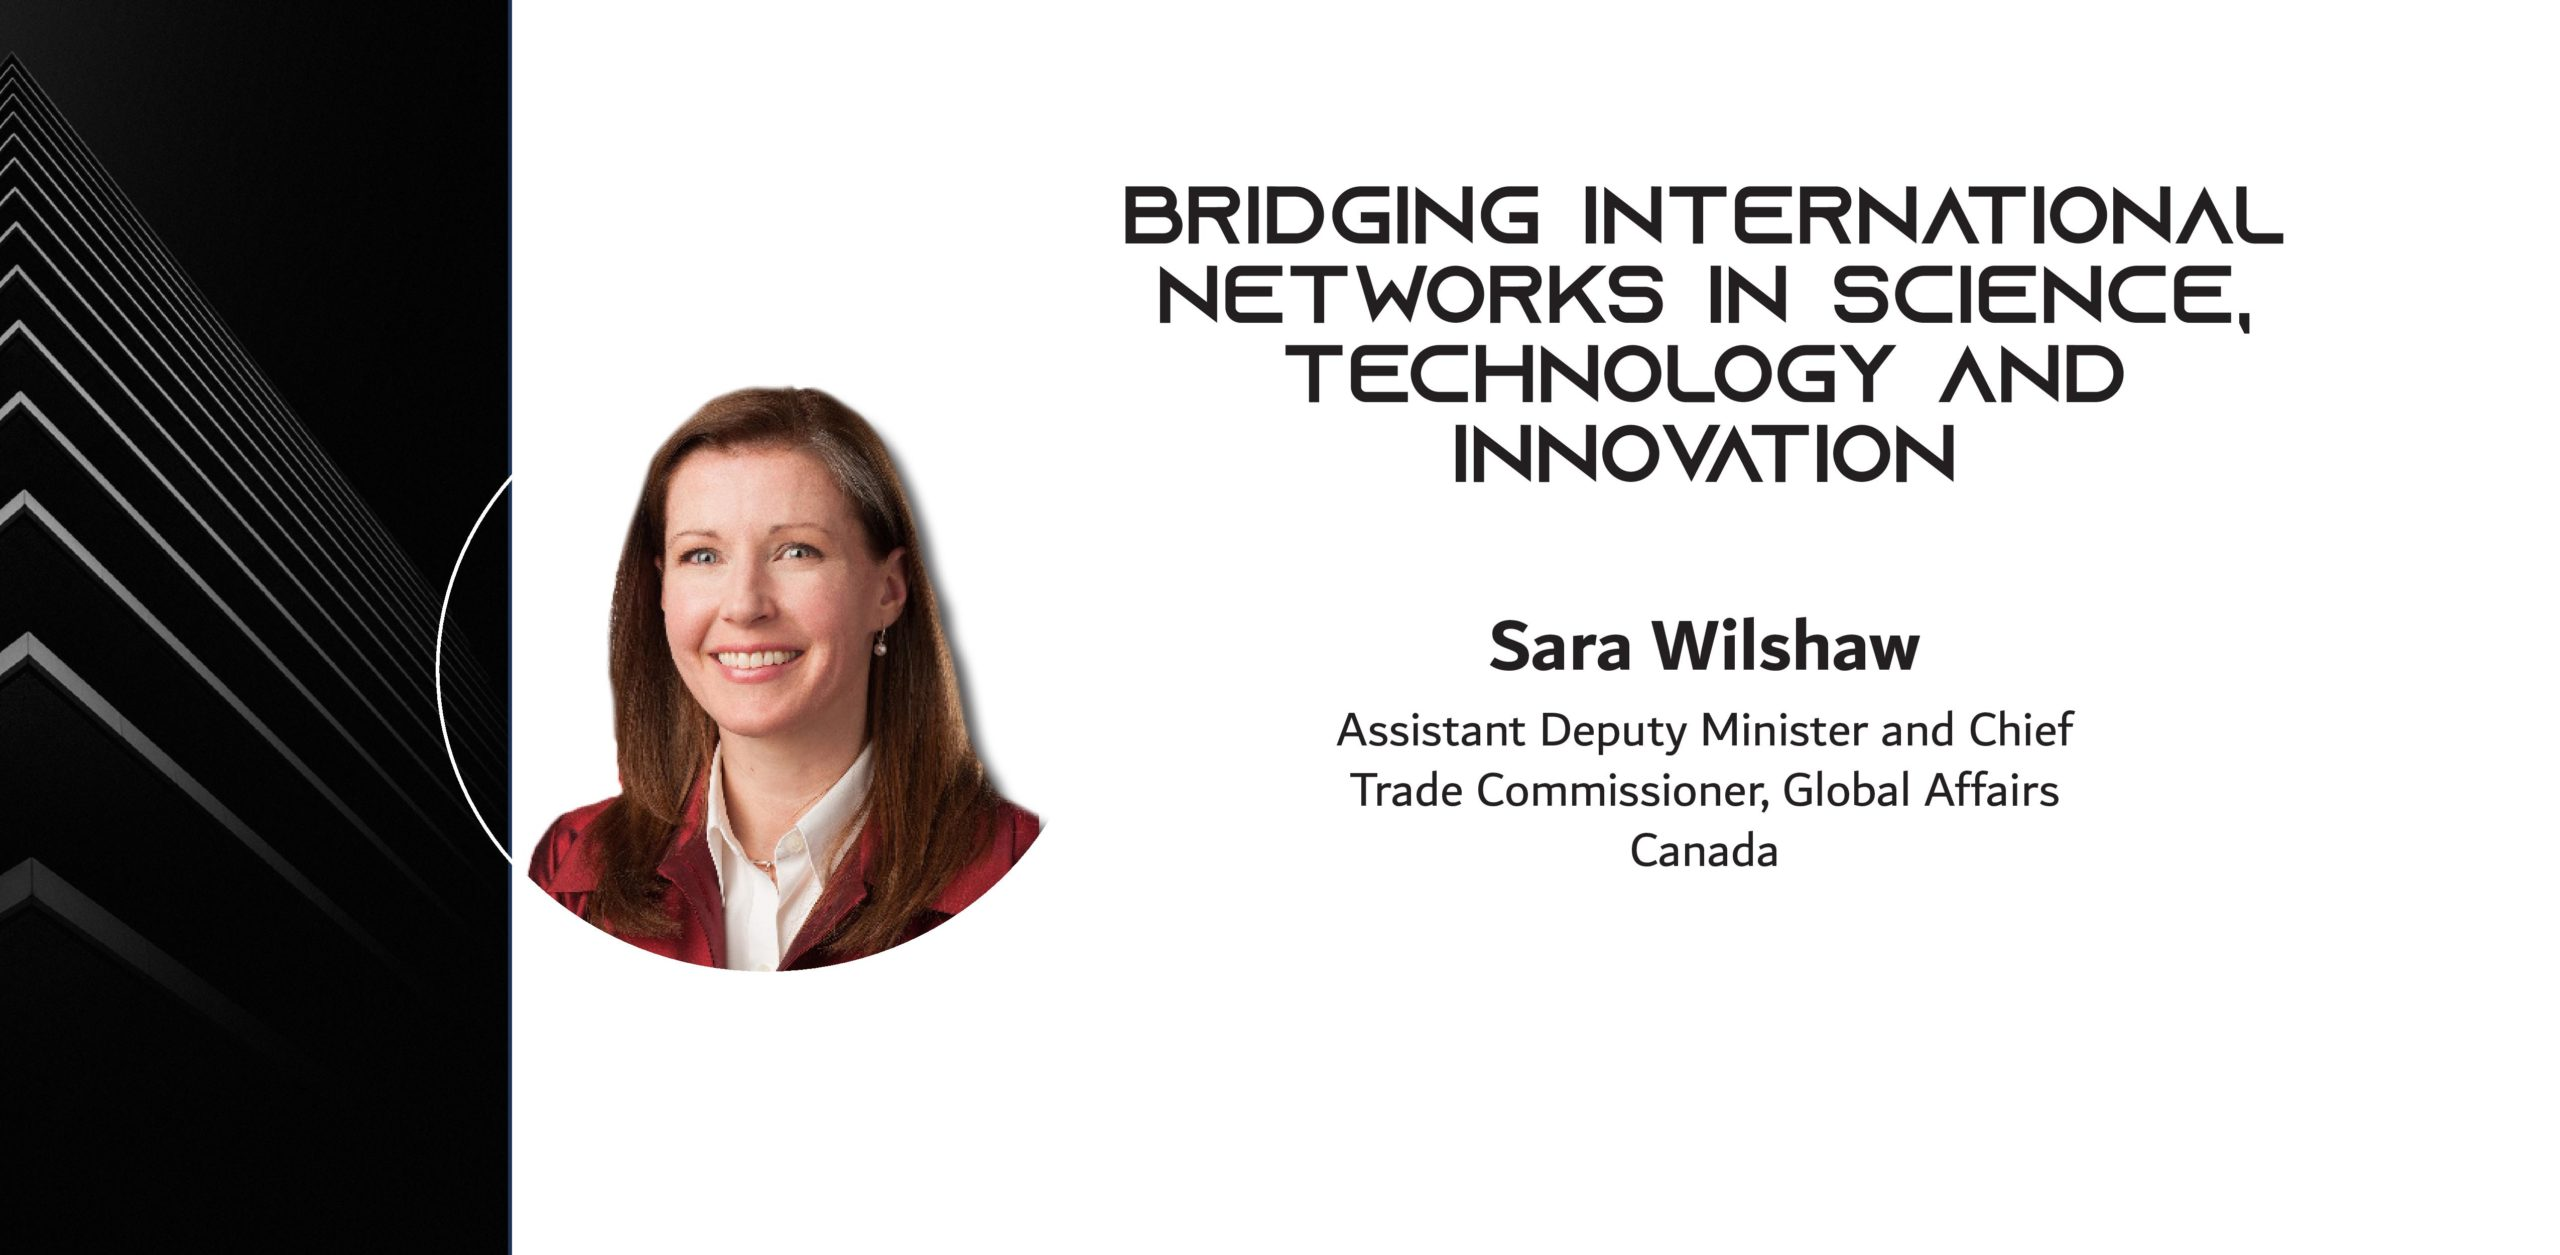 Photo of a woman wiht the words: BRIDGING INTERNATIONAL NETWORKS IN SCIENCE, TECHNOLOGY AND INNOVATION By Sara Wilshaw, Assistant Deputy Minister and Chief Trade Commissioner, Global Affairs Canada